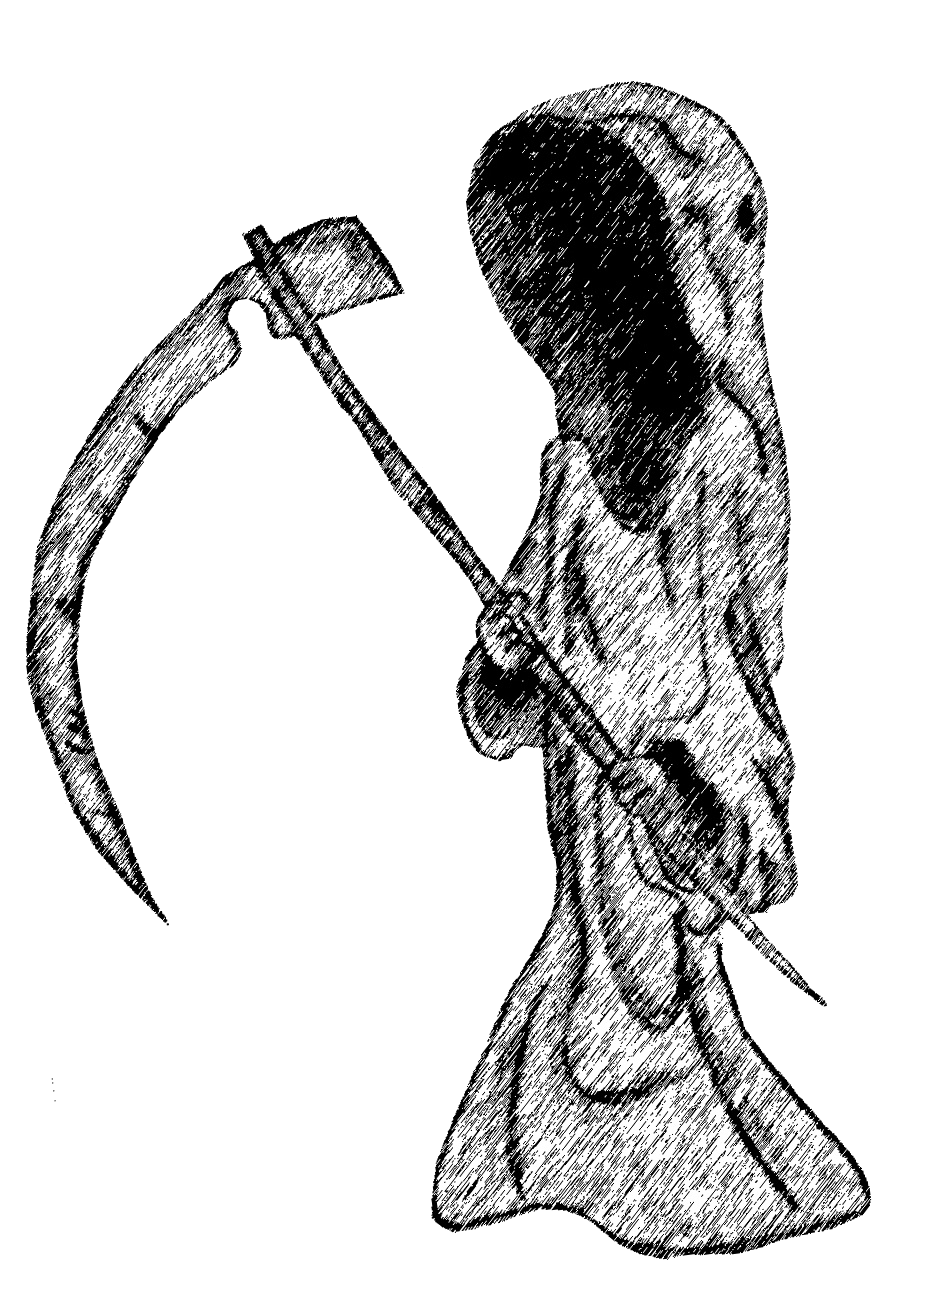 File:Death drawing.png.